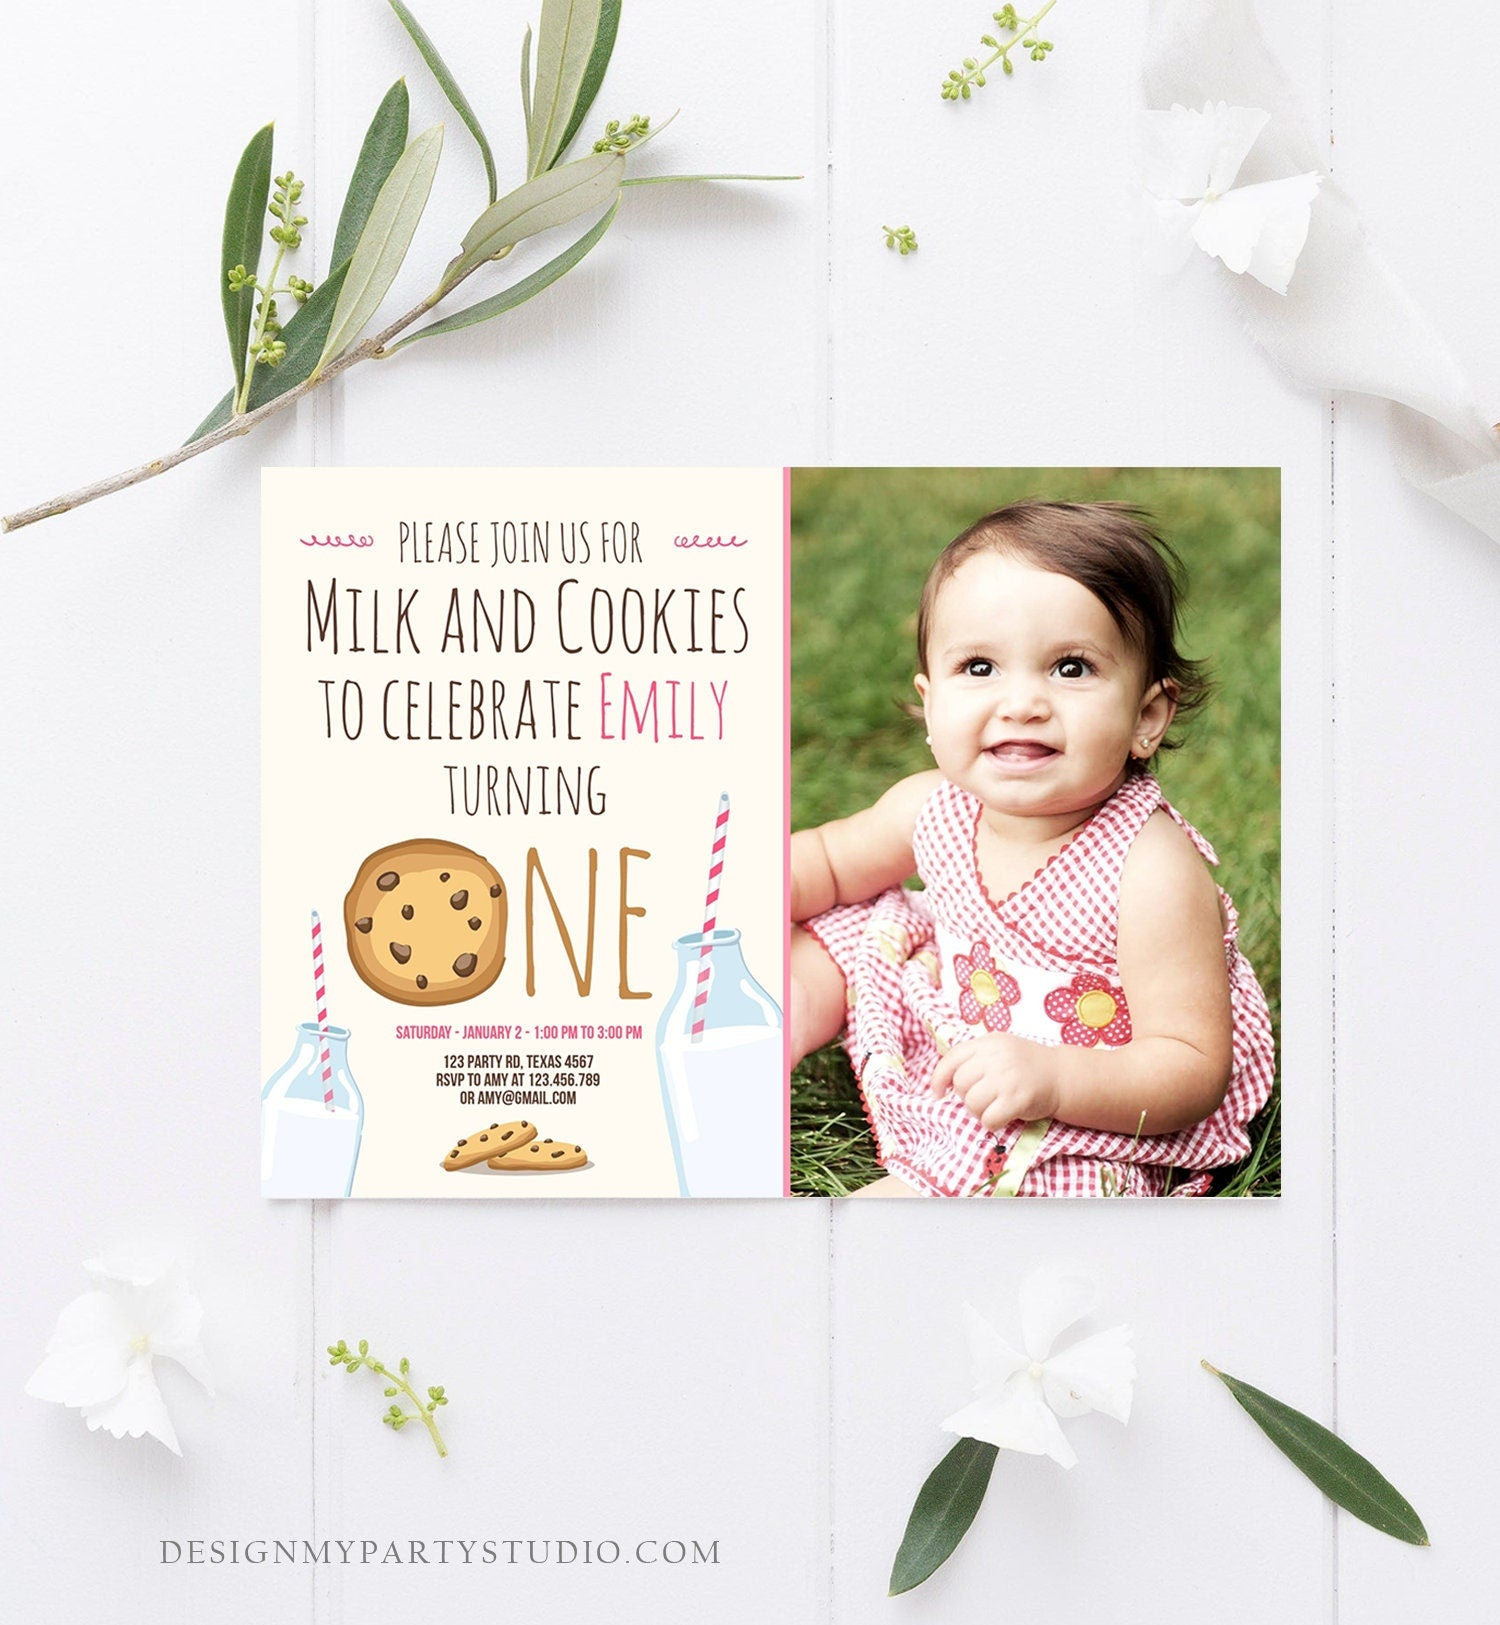 Editable Milk and Cookies Birthday Invitation Milk & Cookies Party Girl Birthday Pink First Birthday Printable Invite Template Corjl 0088